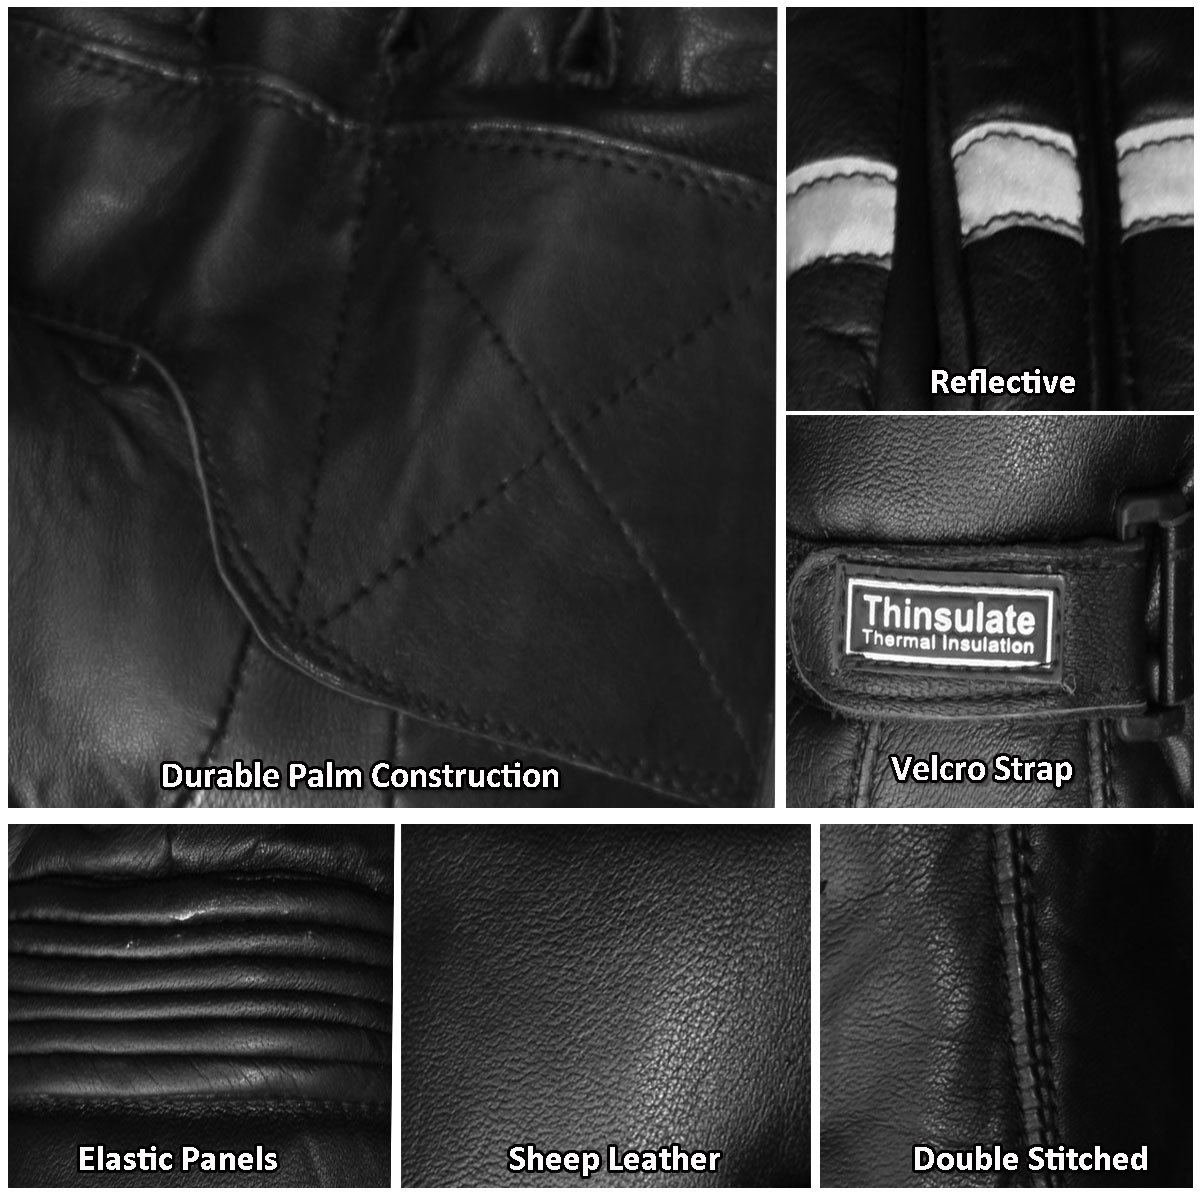 New Reflective Motorcycle Biker Riding Winter Sheep Leather Gloves Black S Jackets 4 Bikes